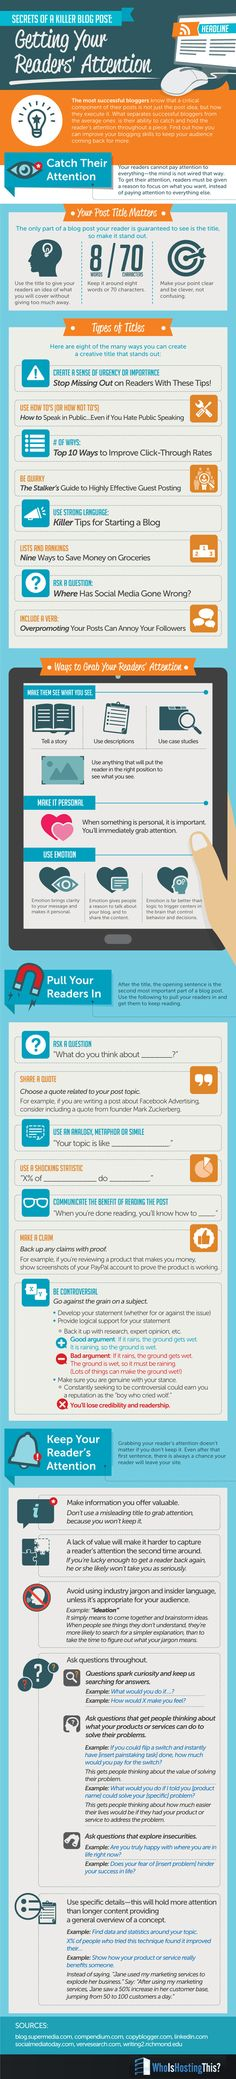 Secrets of a Killer Blog Post: Getting your Readers' Attention